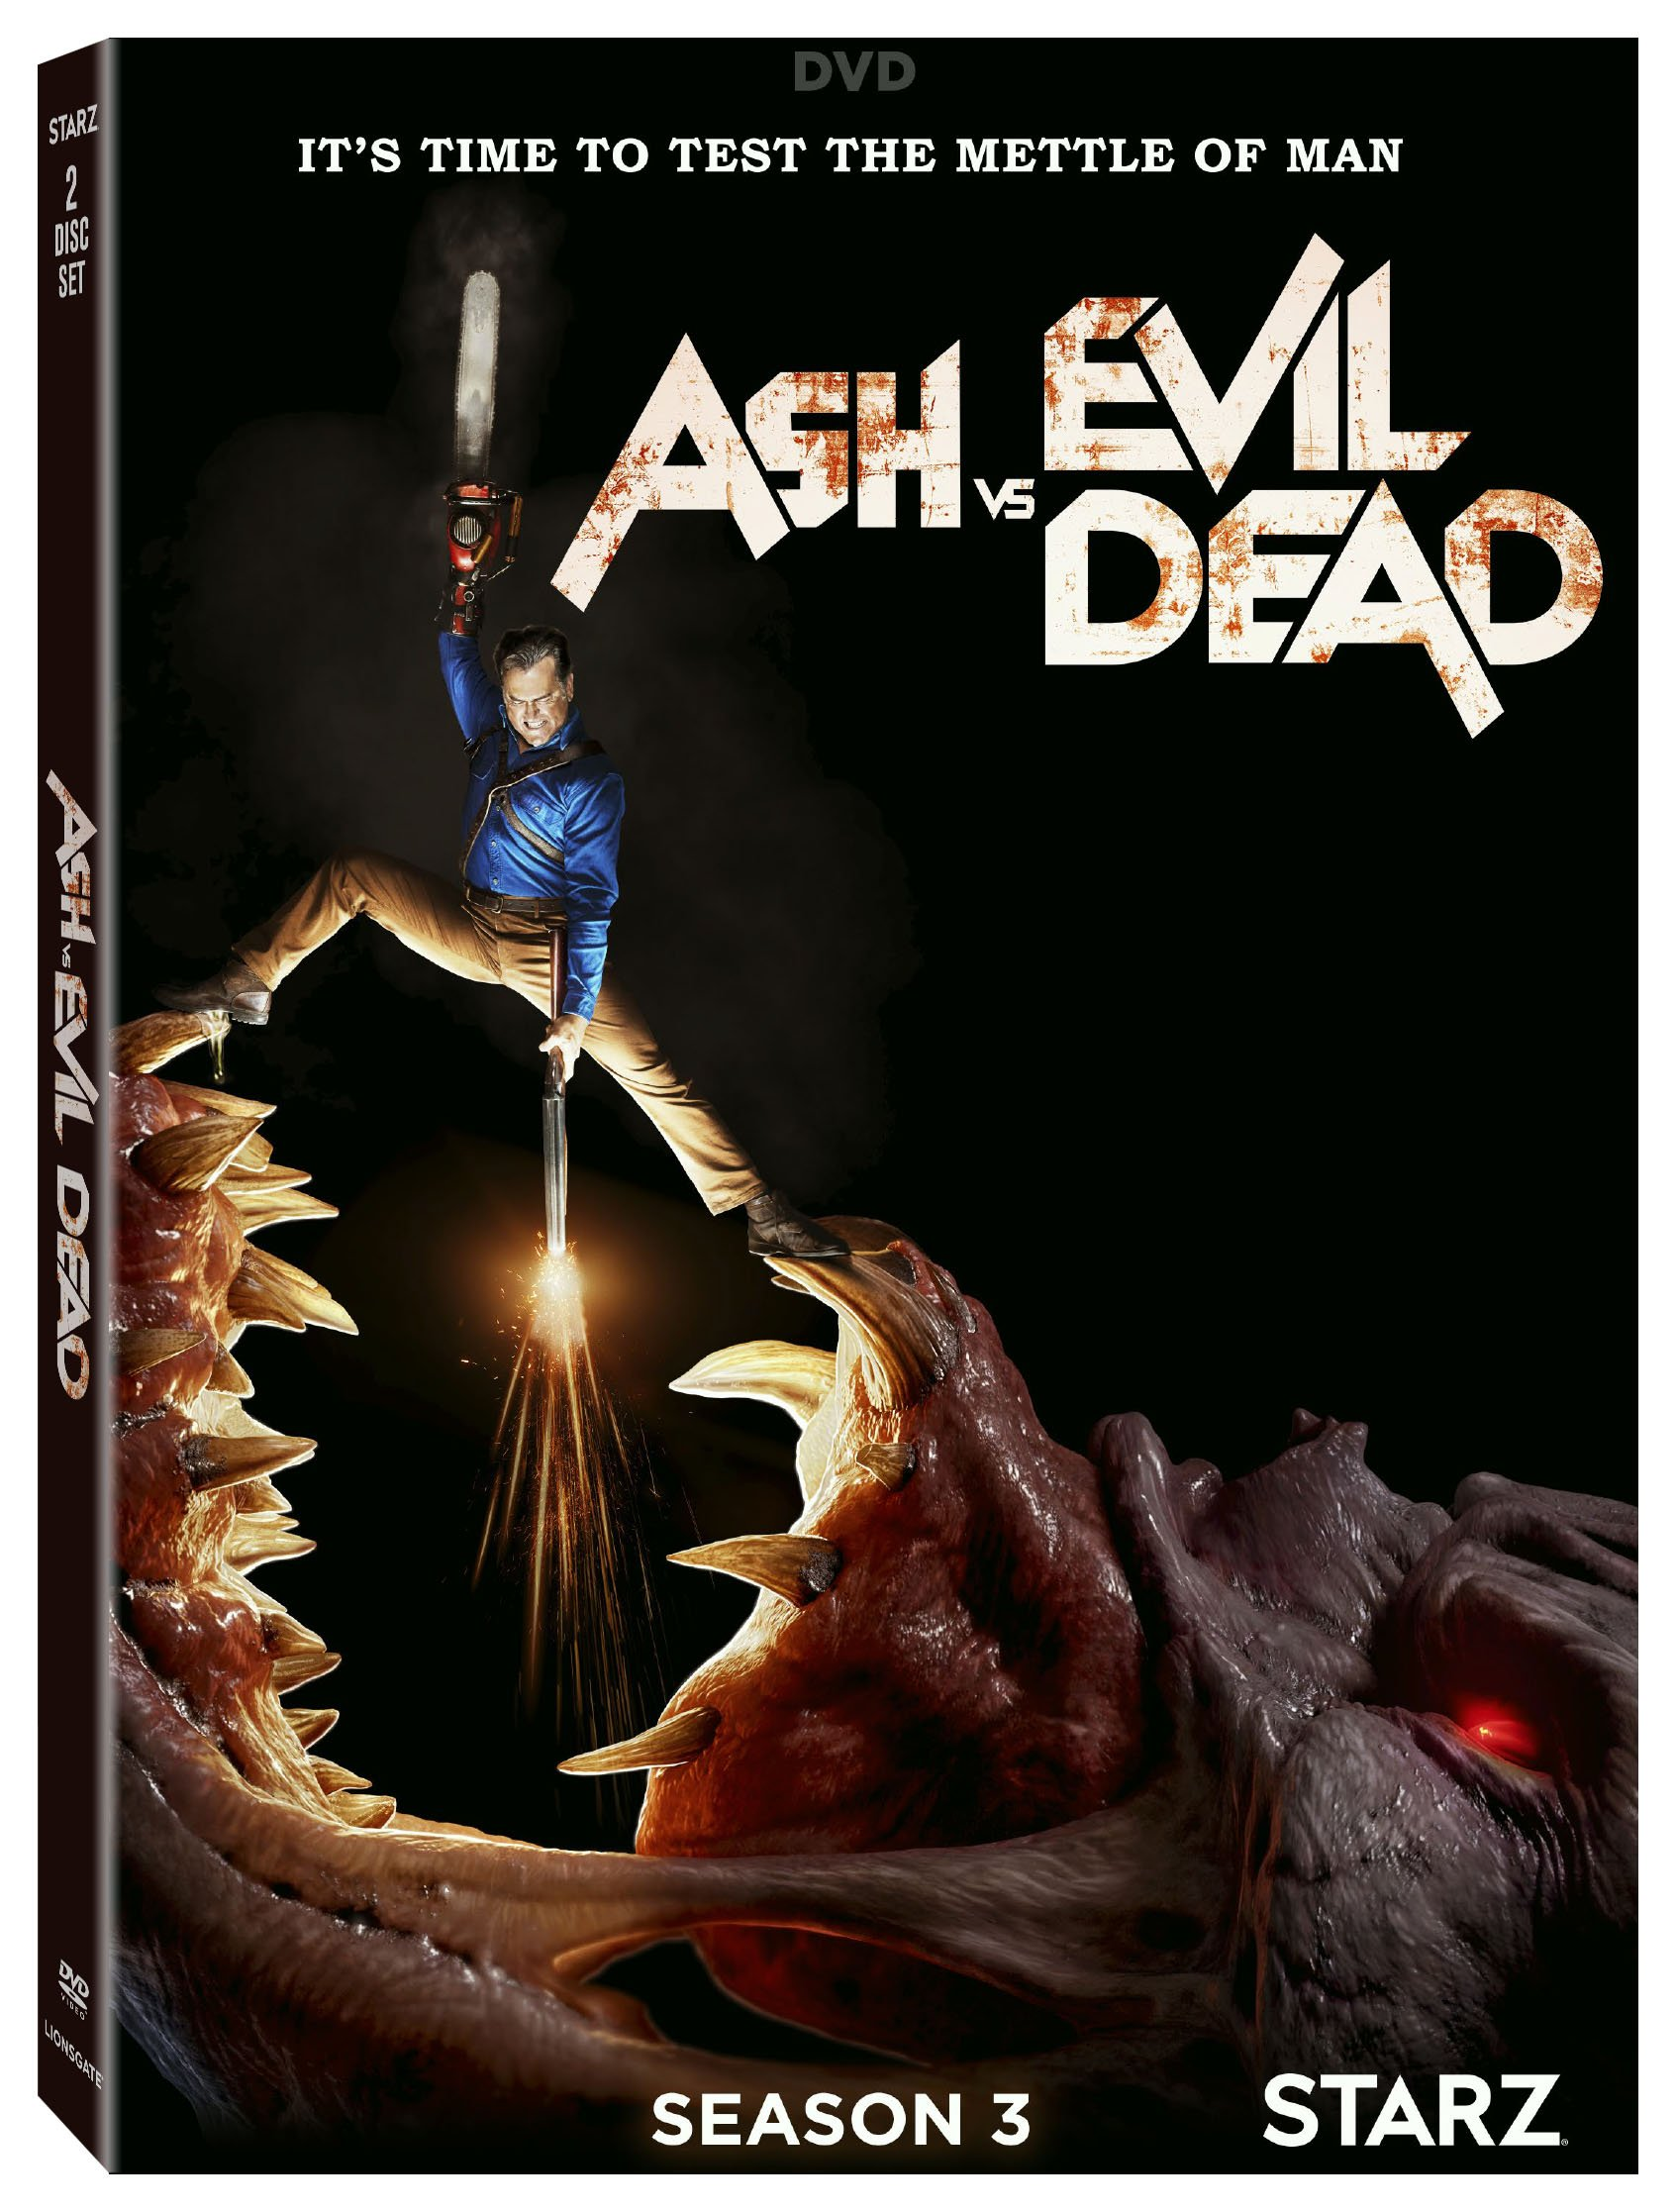 DVD : Ash Vs. Evil Dead: Season 3 (2 Pack, Widescreen, Dubbed, Dolby, 2PC)